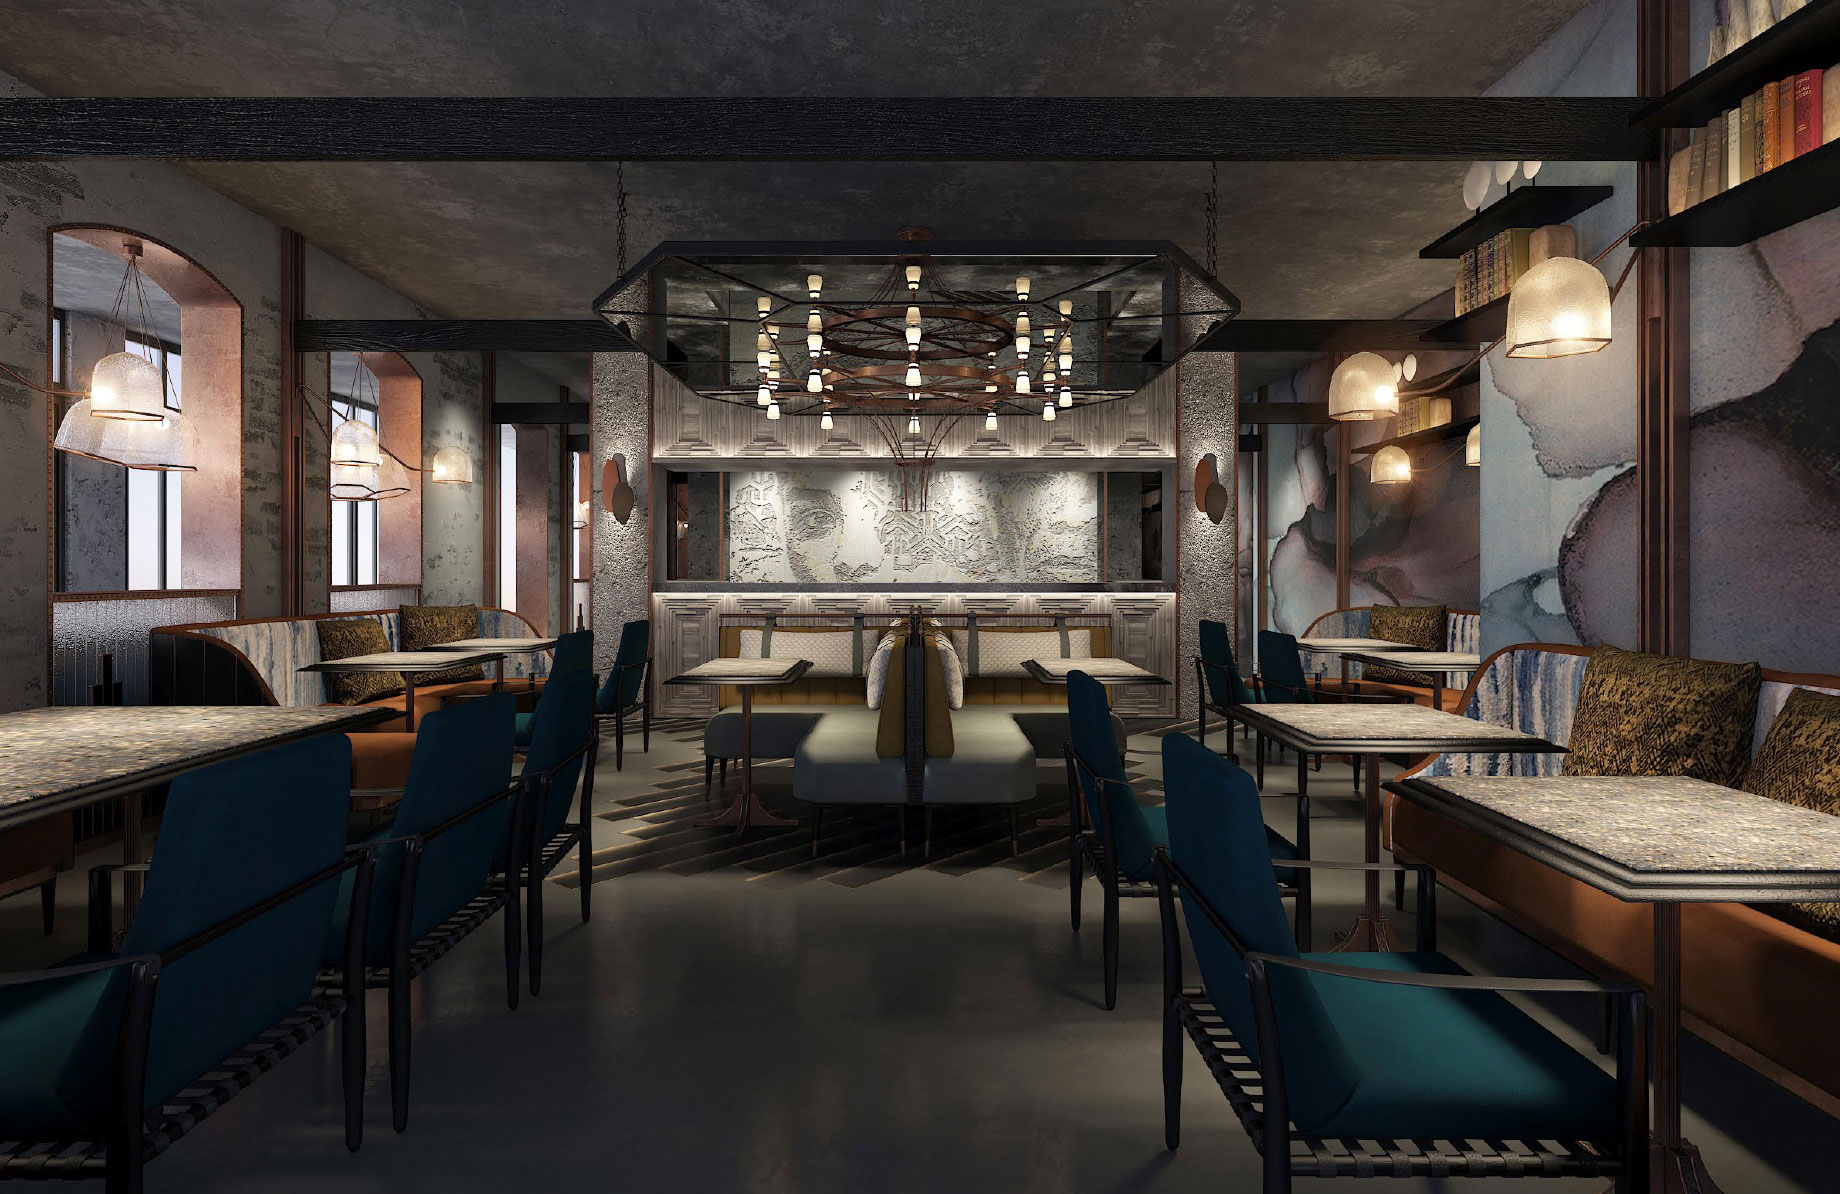 Tortue hamburg opening this summer hospitality net for Interior designer hamburg